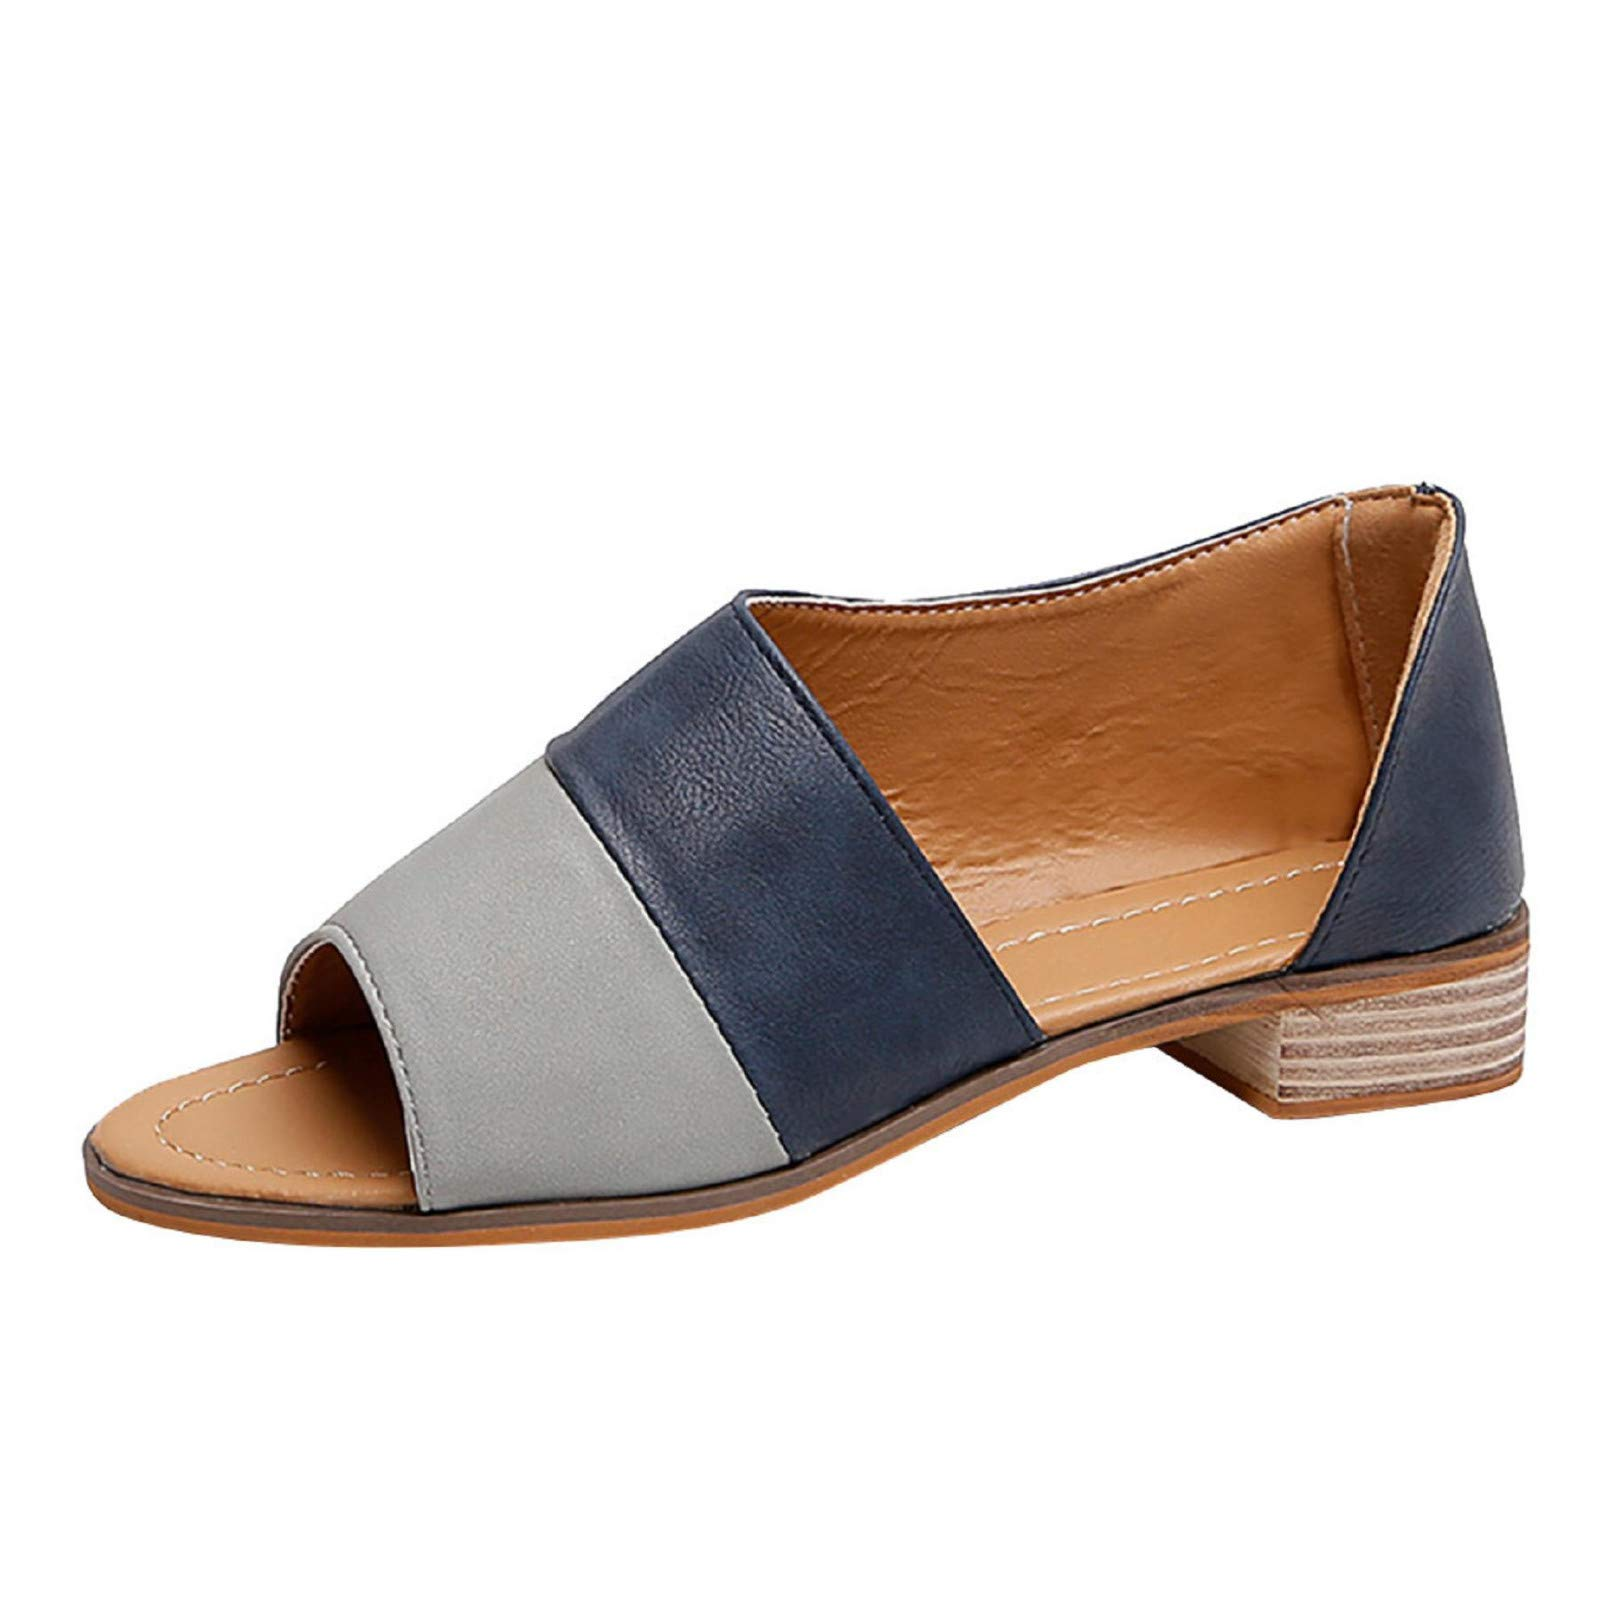 Womens Peep Toe Flat Sandals Color Block Casual Slip On Side Cutout D'Orsay Shoes Blue